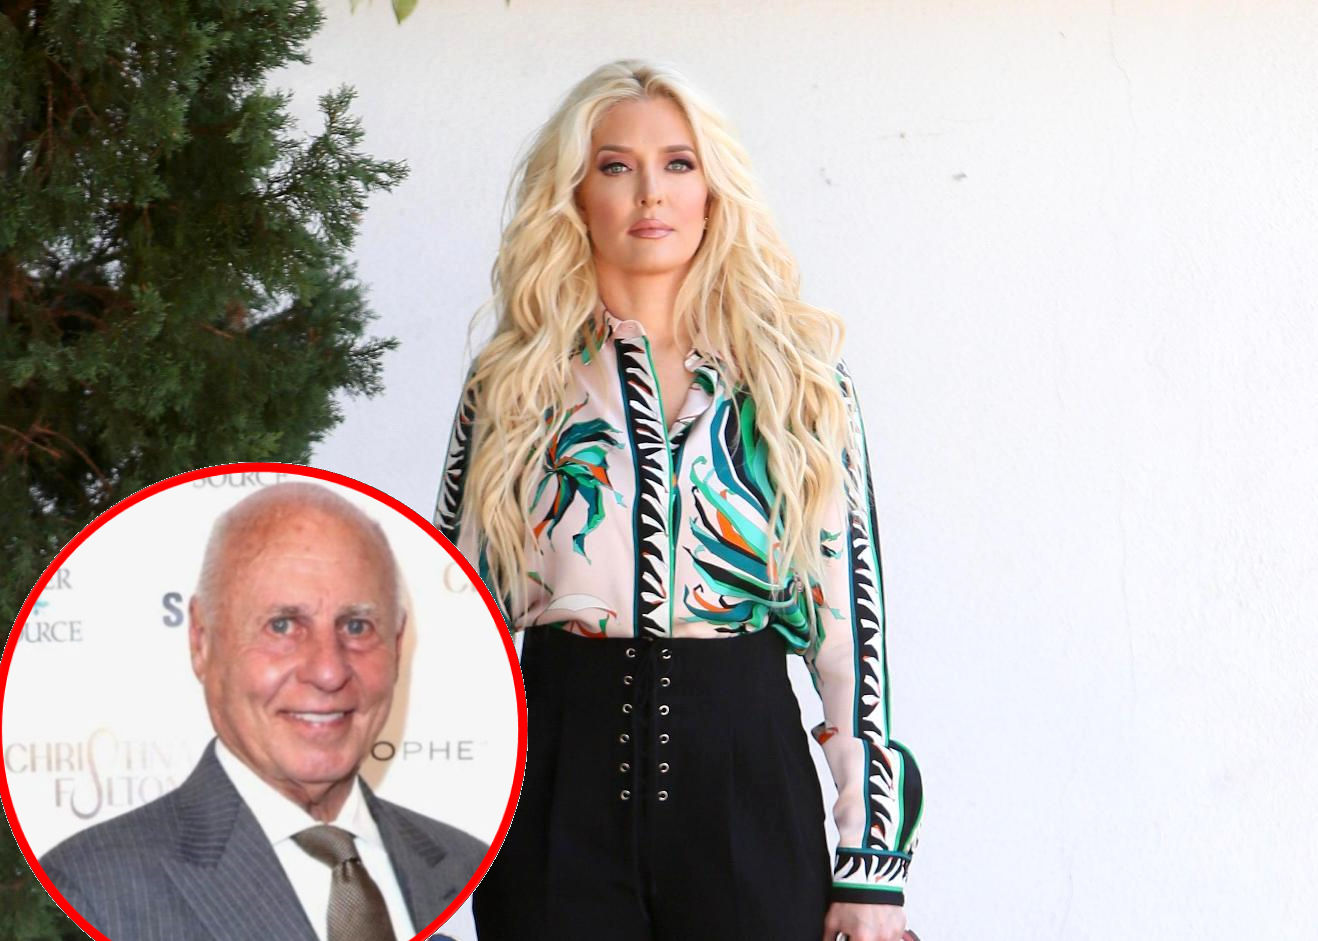 Erika Jayne Has Spent Whopping $600K on Legal Fees and Refuses to Reveal Where Money's Coming According to Attorney, Plus He Suspects Thomas Girardi is Not in Senior Living Facility